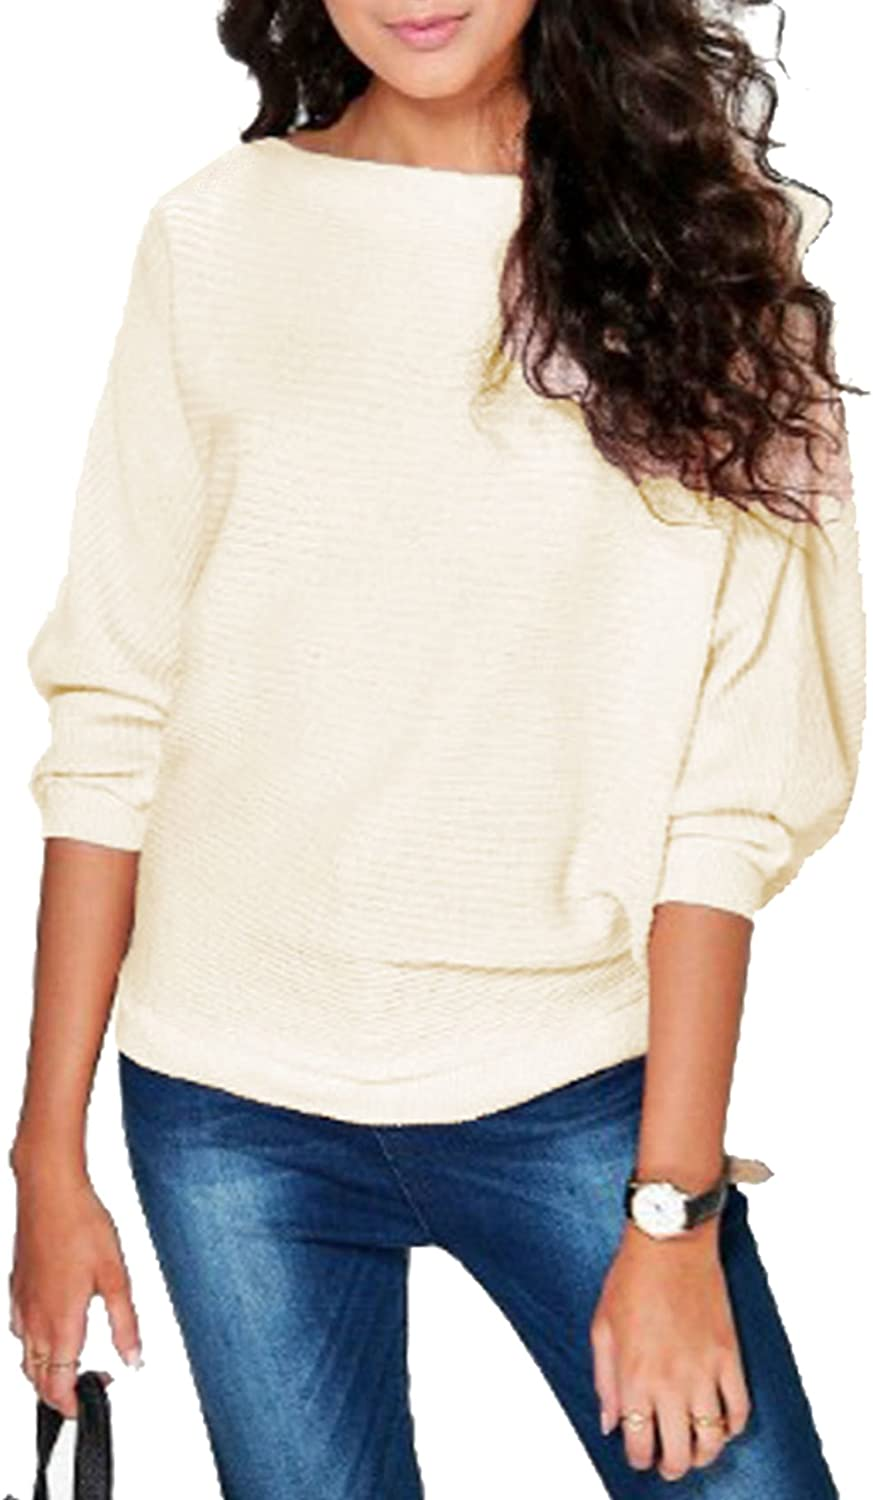 Vanilla Inc SA Fashions /® Ladies Knitted Casual Loose Batwing Long Sleeves Knit Pullover Sweater Jumper Oversized Thick Ribbed Winter Warm Chunky Baggy Top 8-14 , Cream M//L 12-14